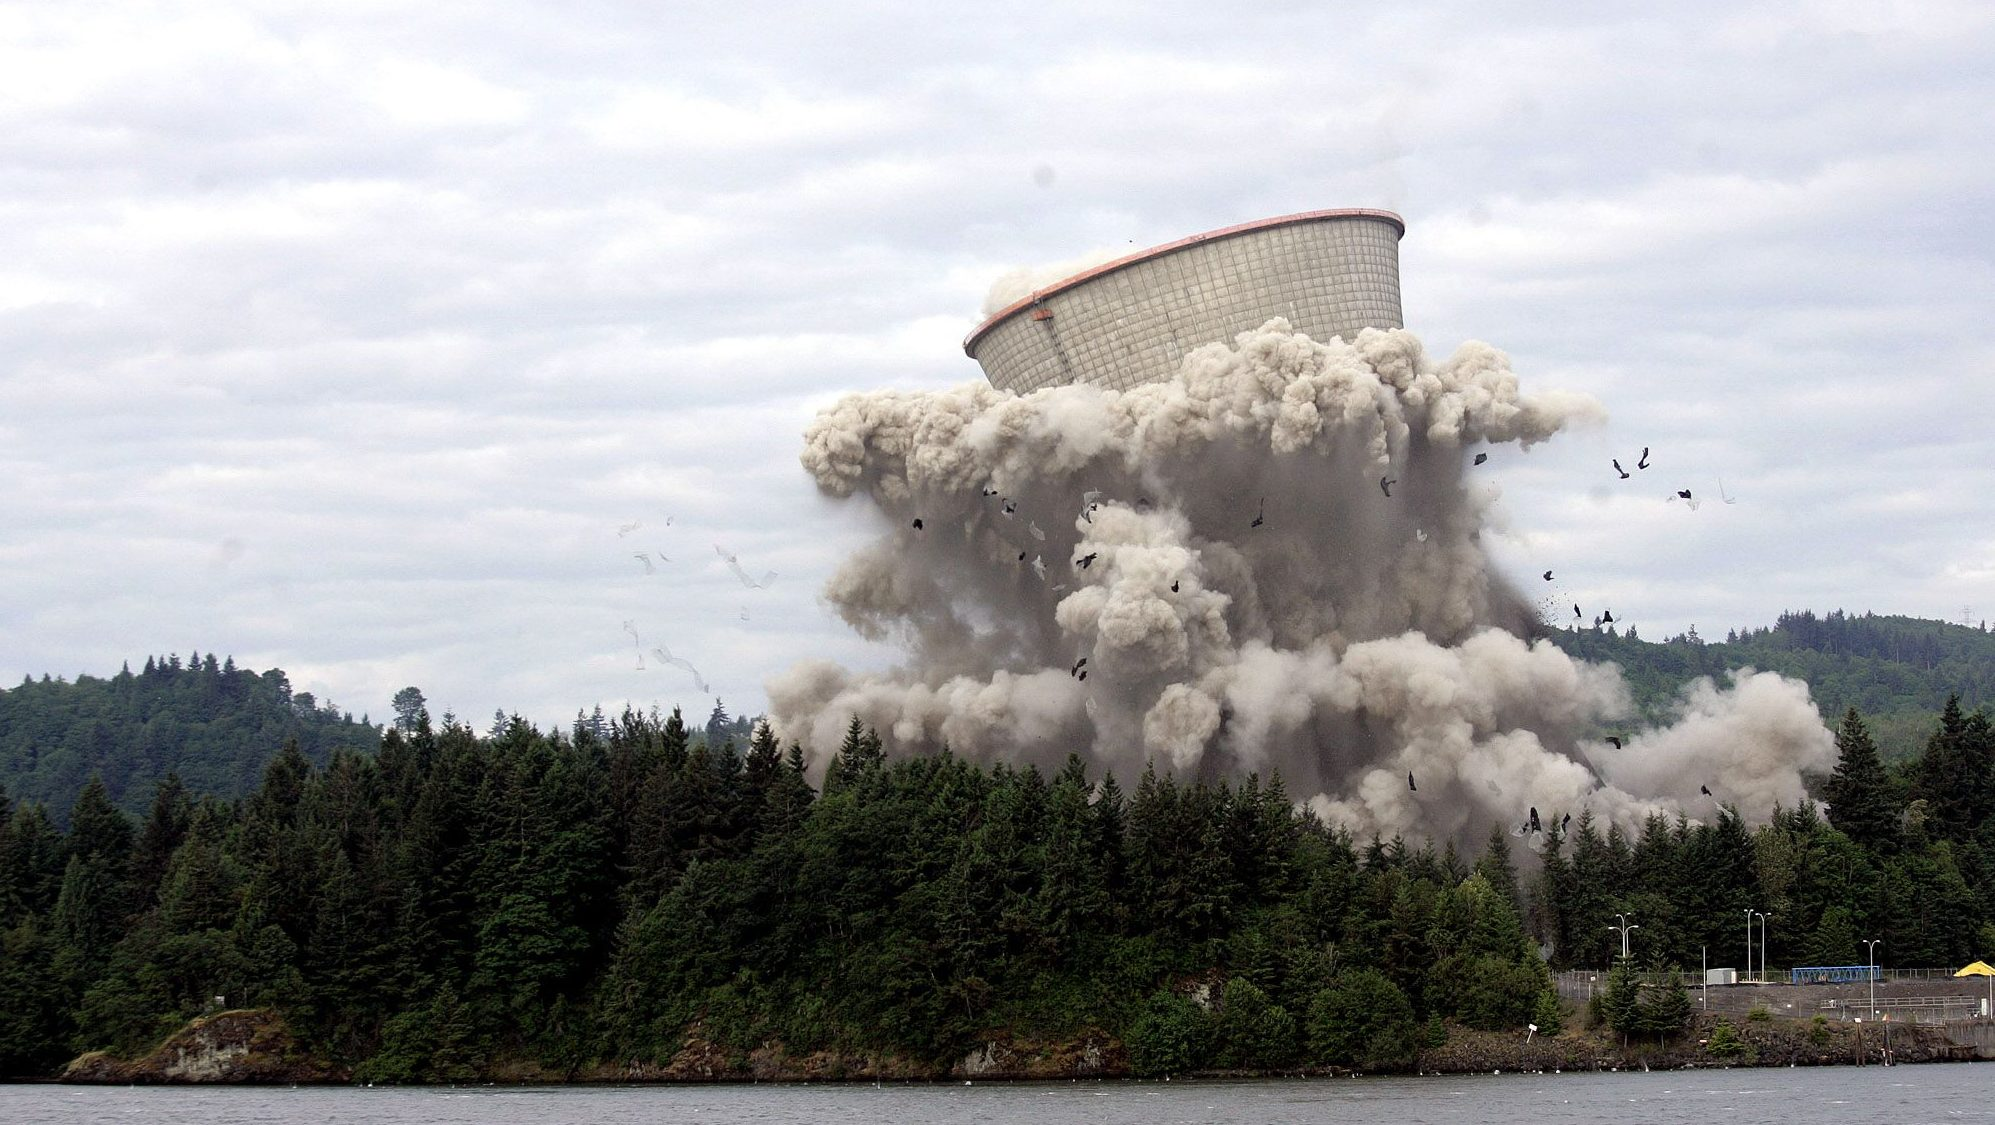 Portland General Electric's Trojan Nuclear Power Plant cooling tower is shown during its implosion Sunday, May 21, 2006, near Rainier, Ore.